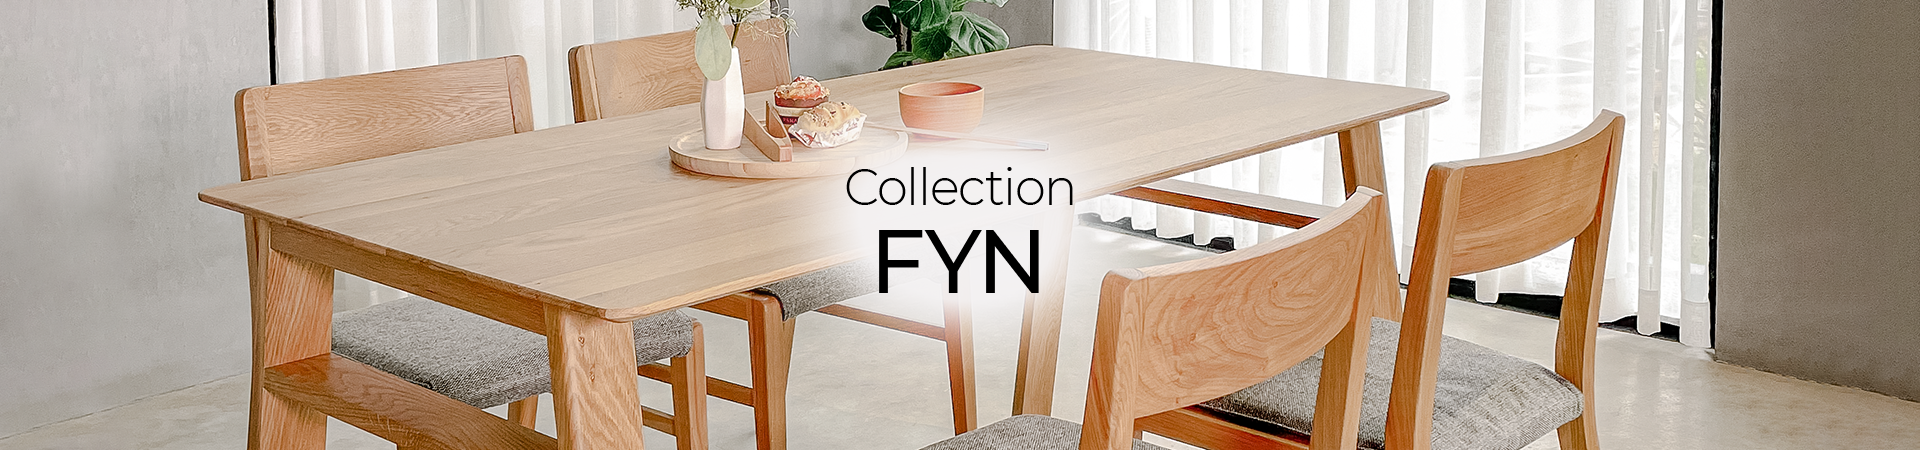 FYN Collection